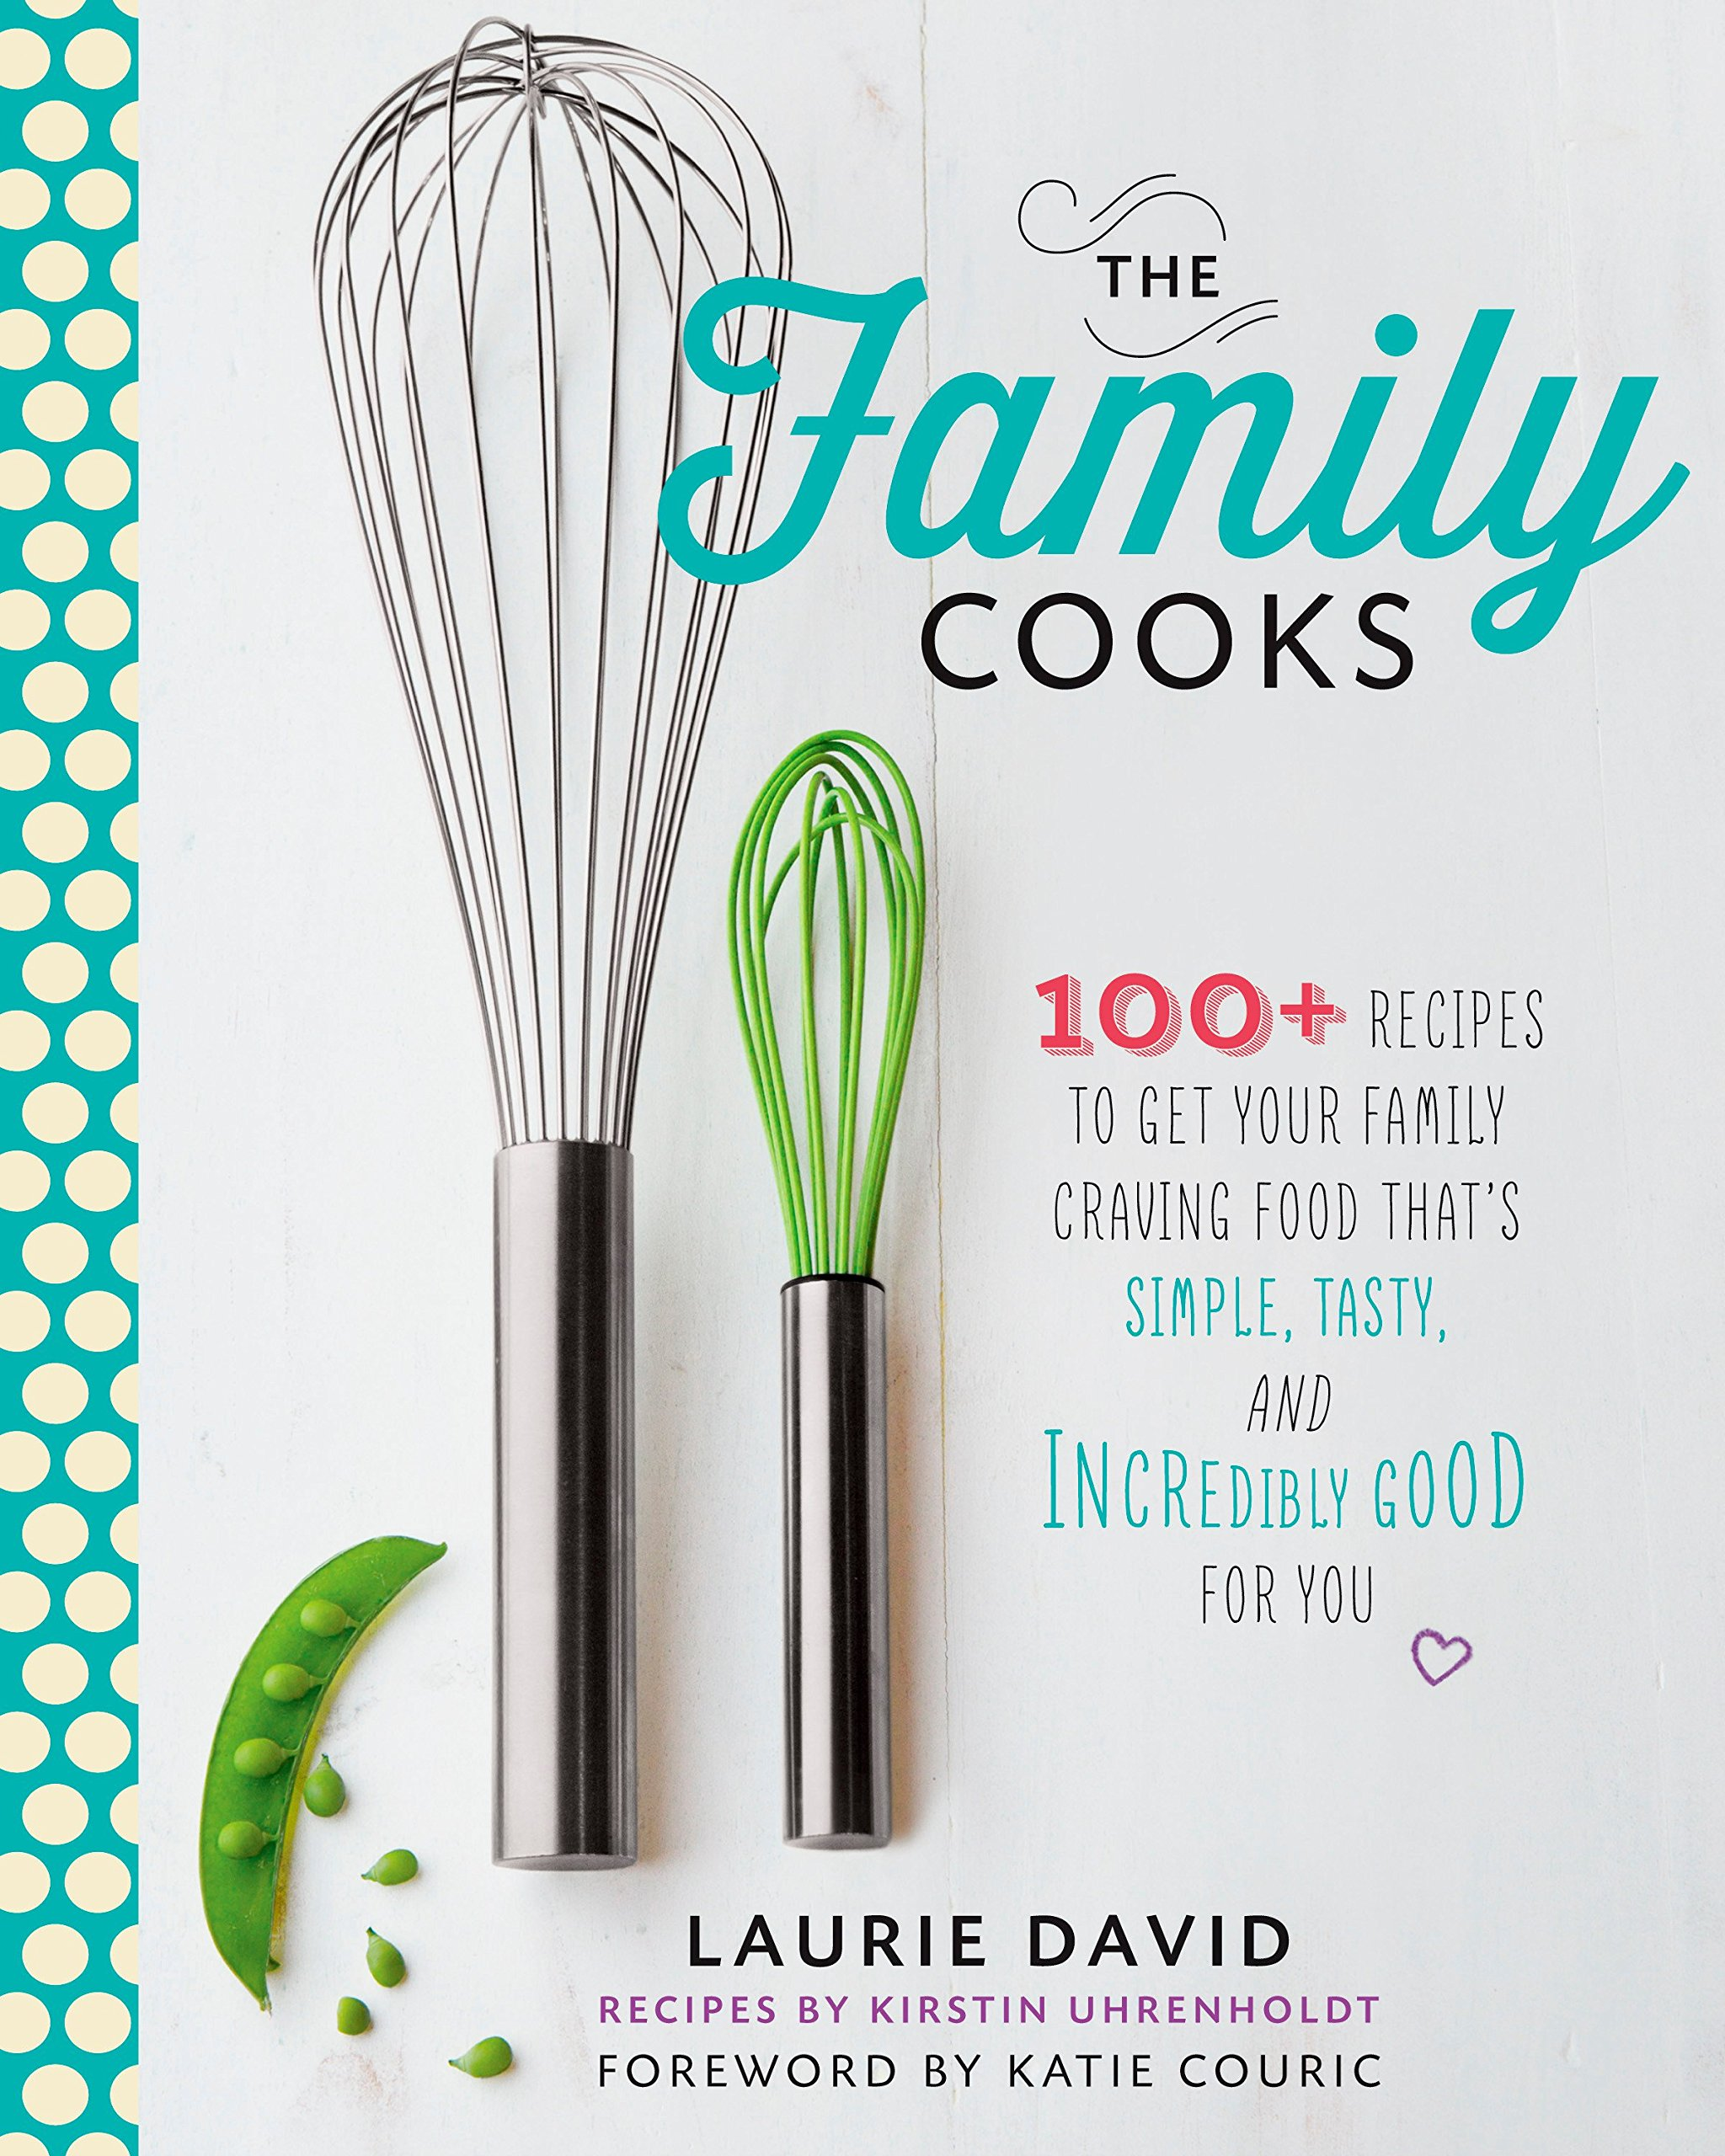 The Family Cooks 100+ Recipes To Get Your Family Craving